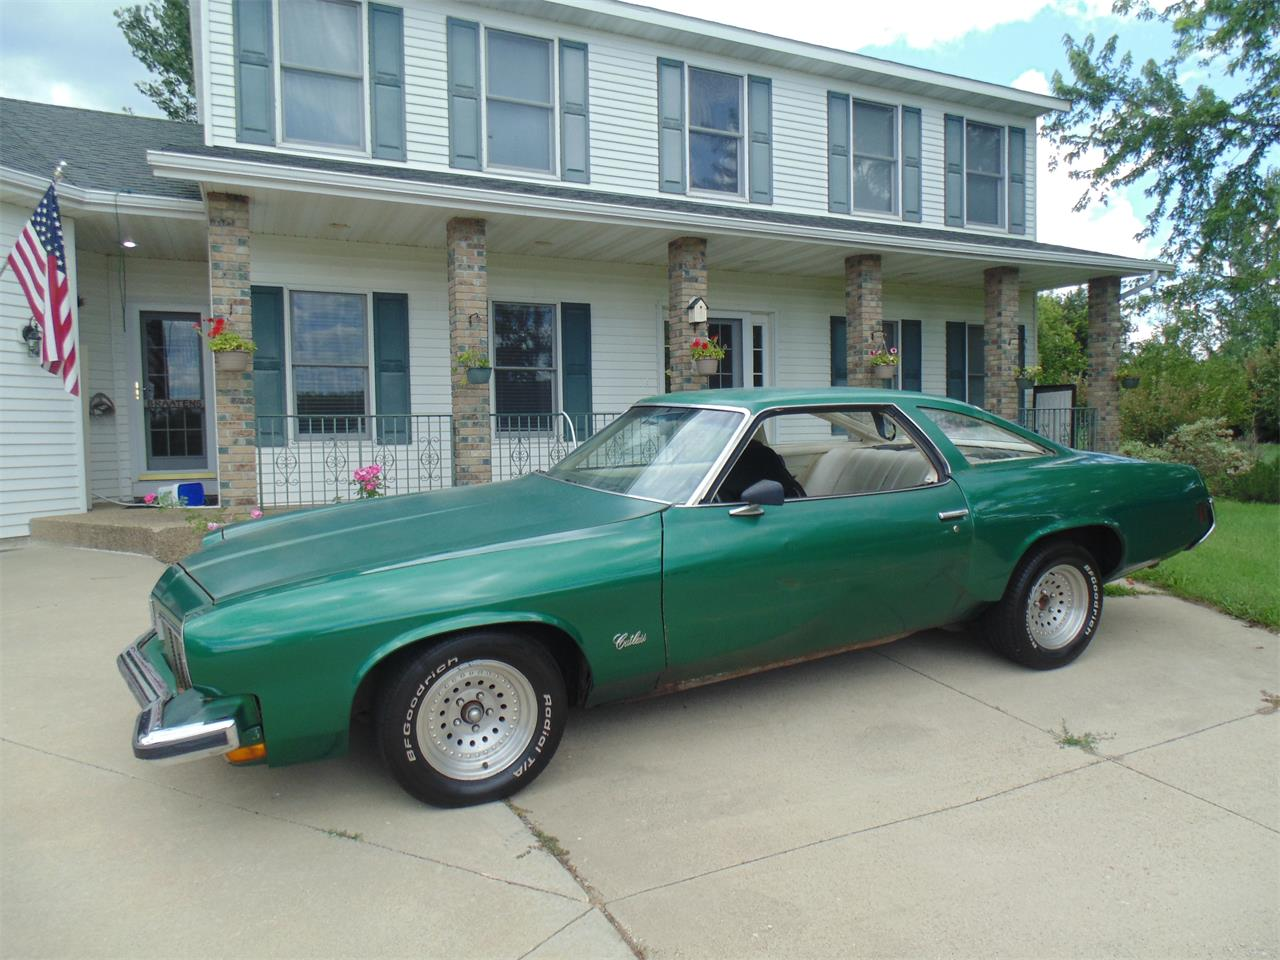 Large Picture of '73 Oldsmobile Cutlass located in Minnesota - $5,999.00 Offered by Braaten's Auto Center - LJM7